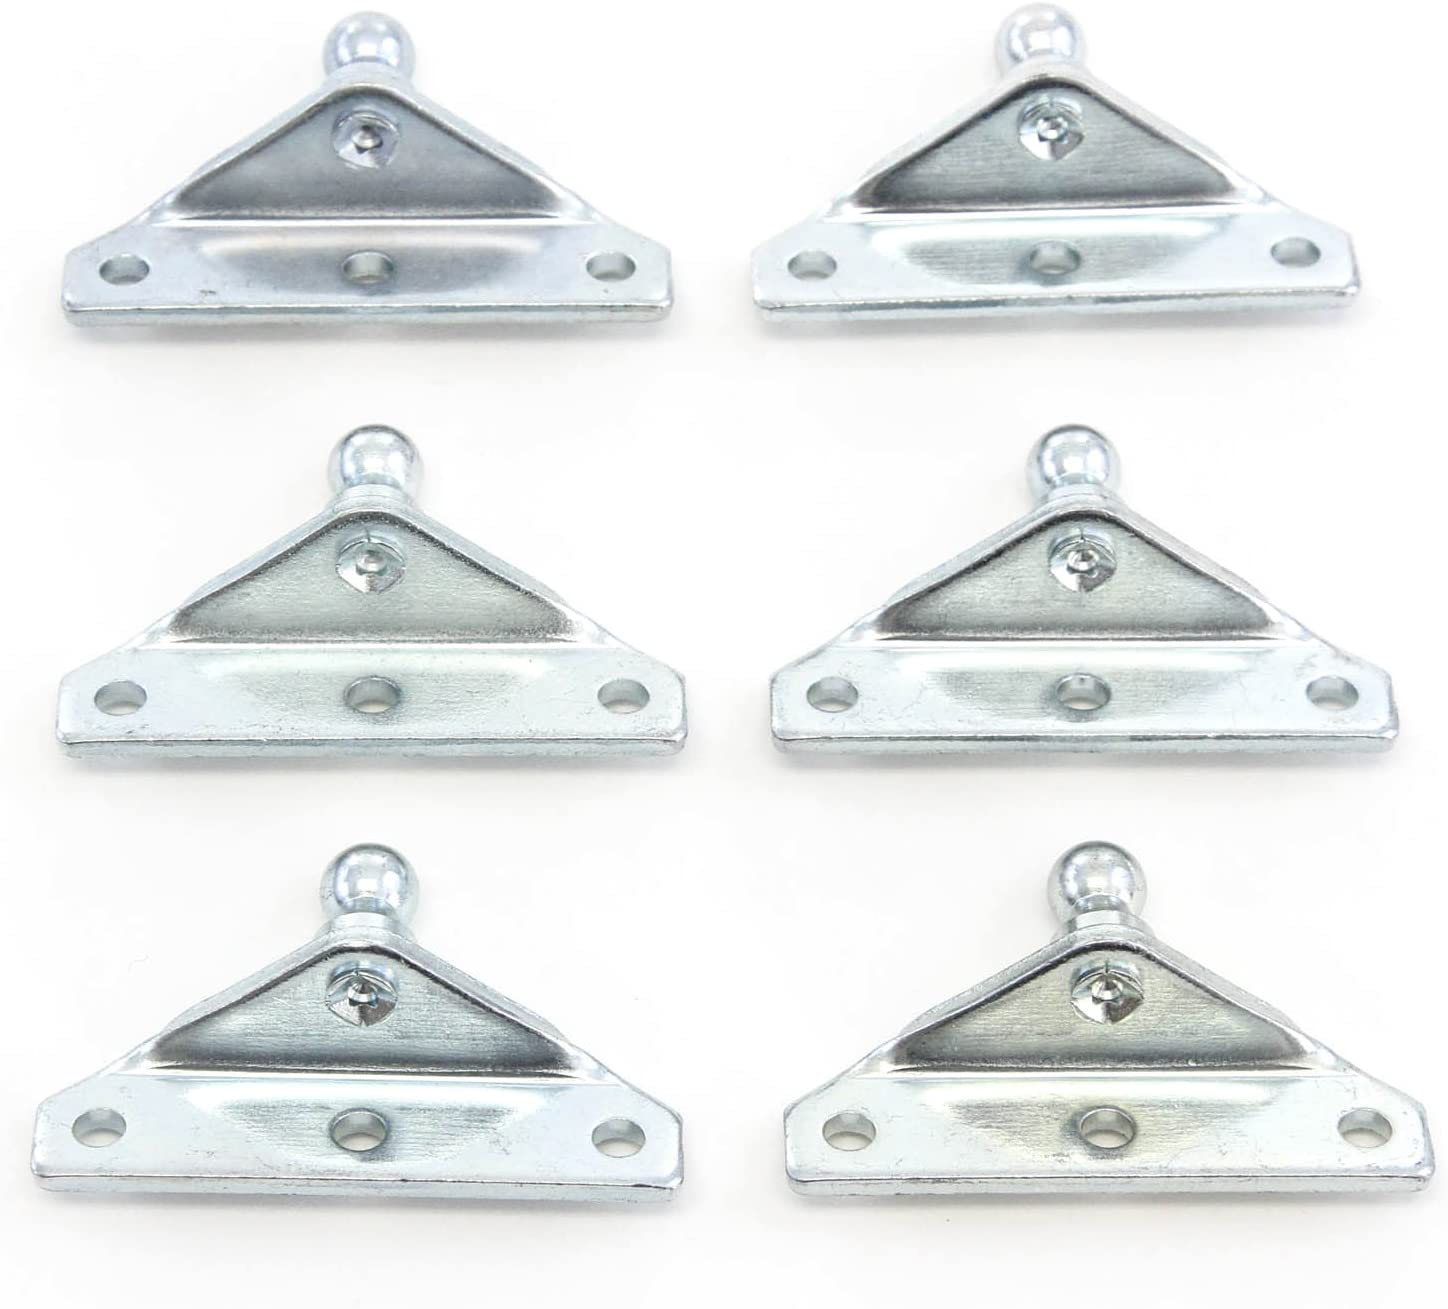 6 Ball Stud Brackets 10mm Compatible with Gas Prop Strut Spring Lift Coated Steel 10mm